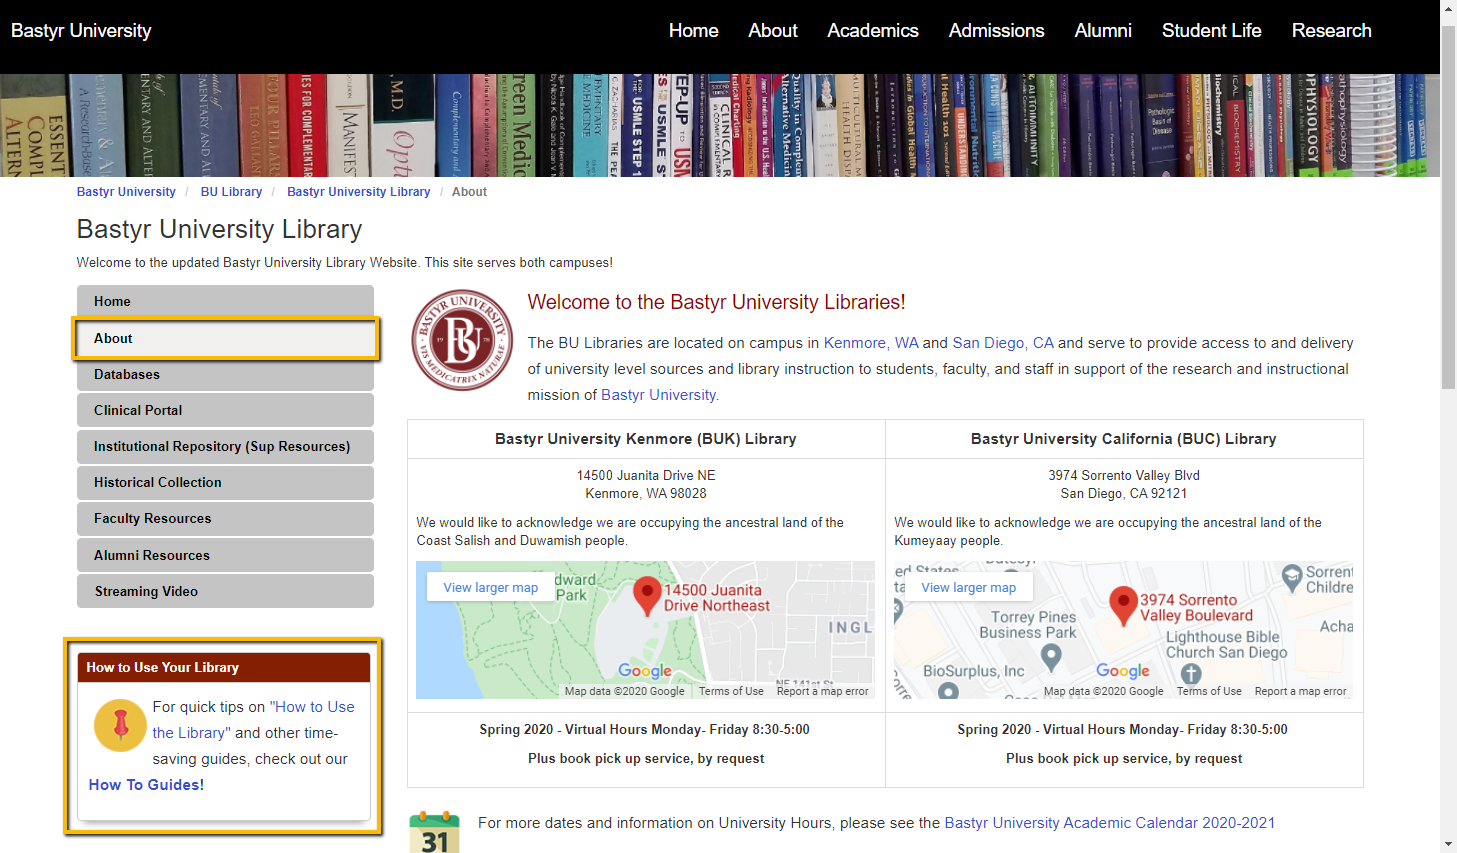 About the Library Page Screenshot